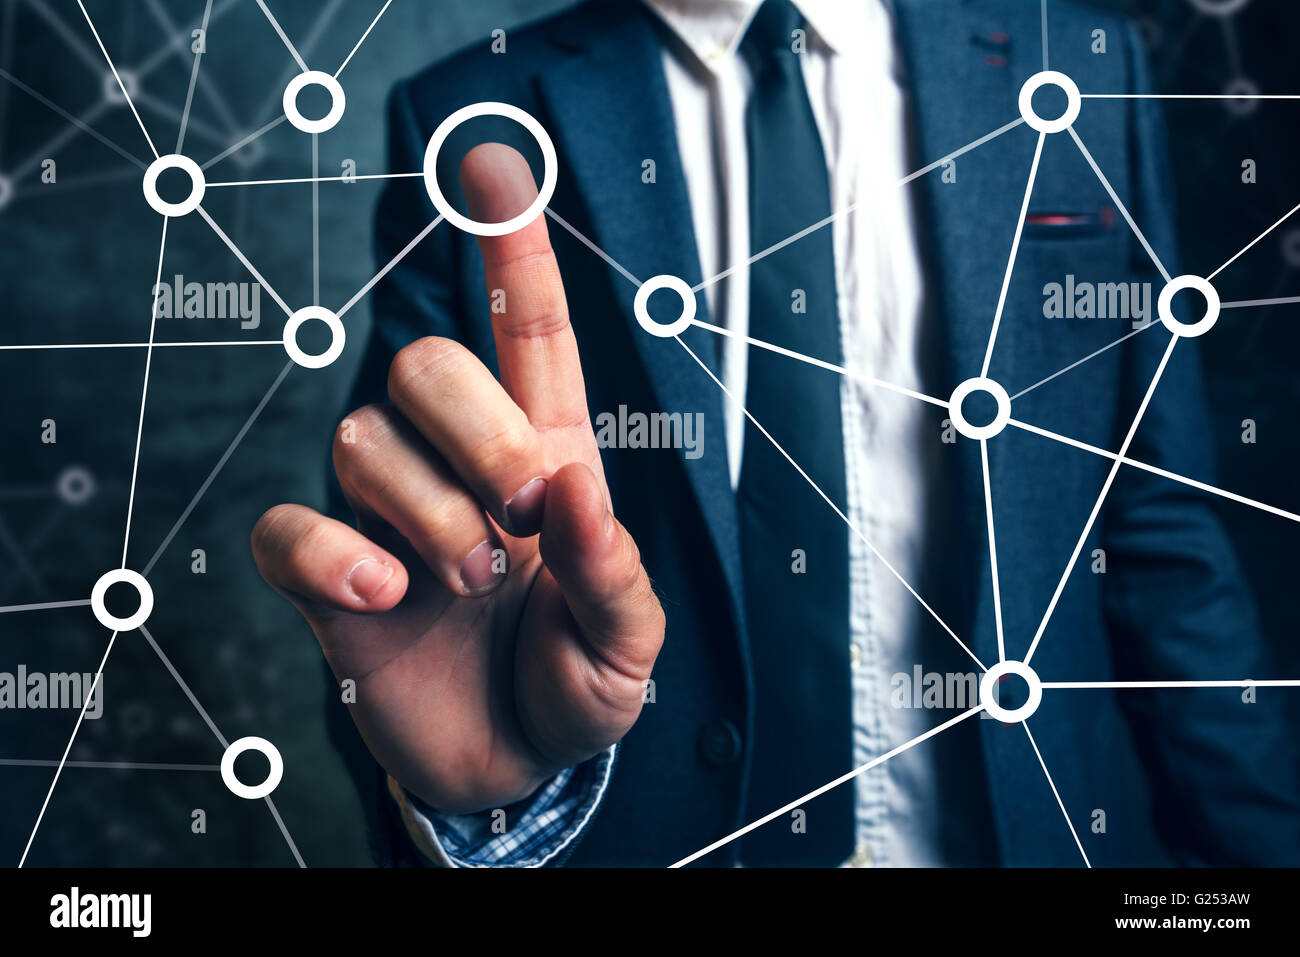 Connect The Dots Stock Photos Connect The Dots Stock Images Alamy